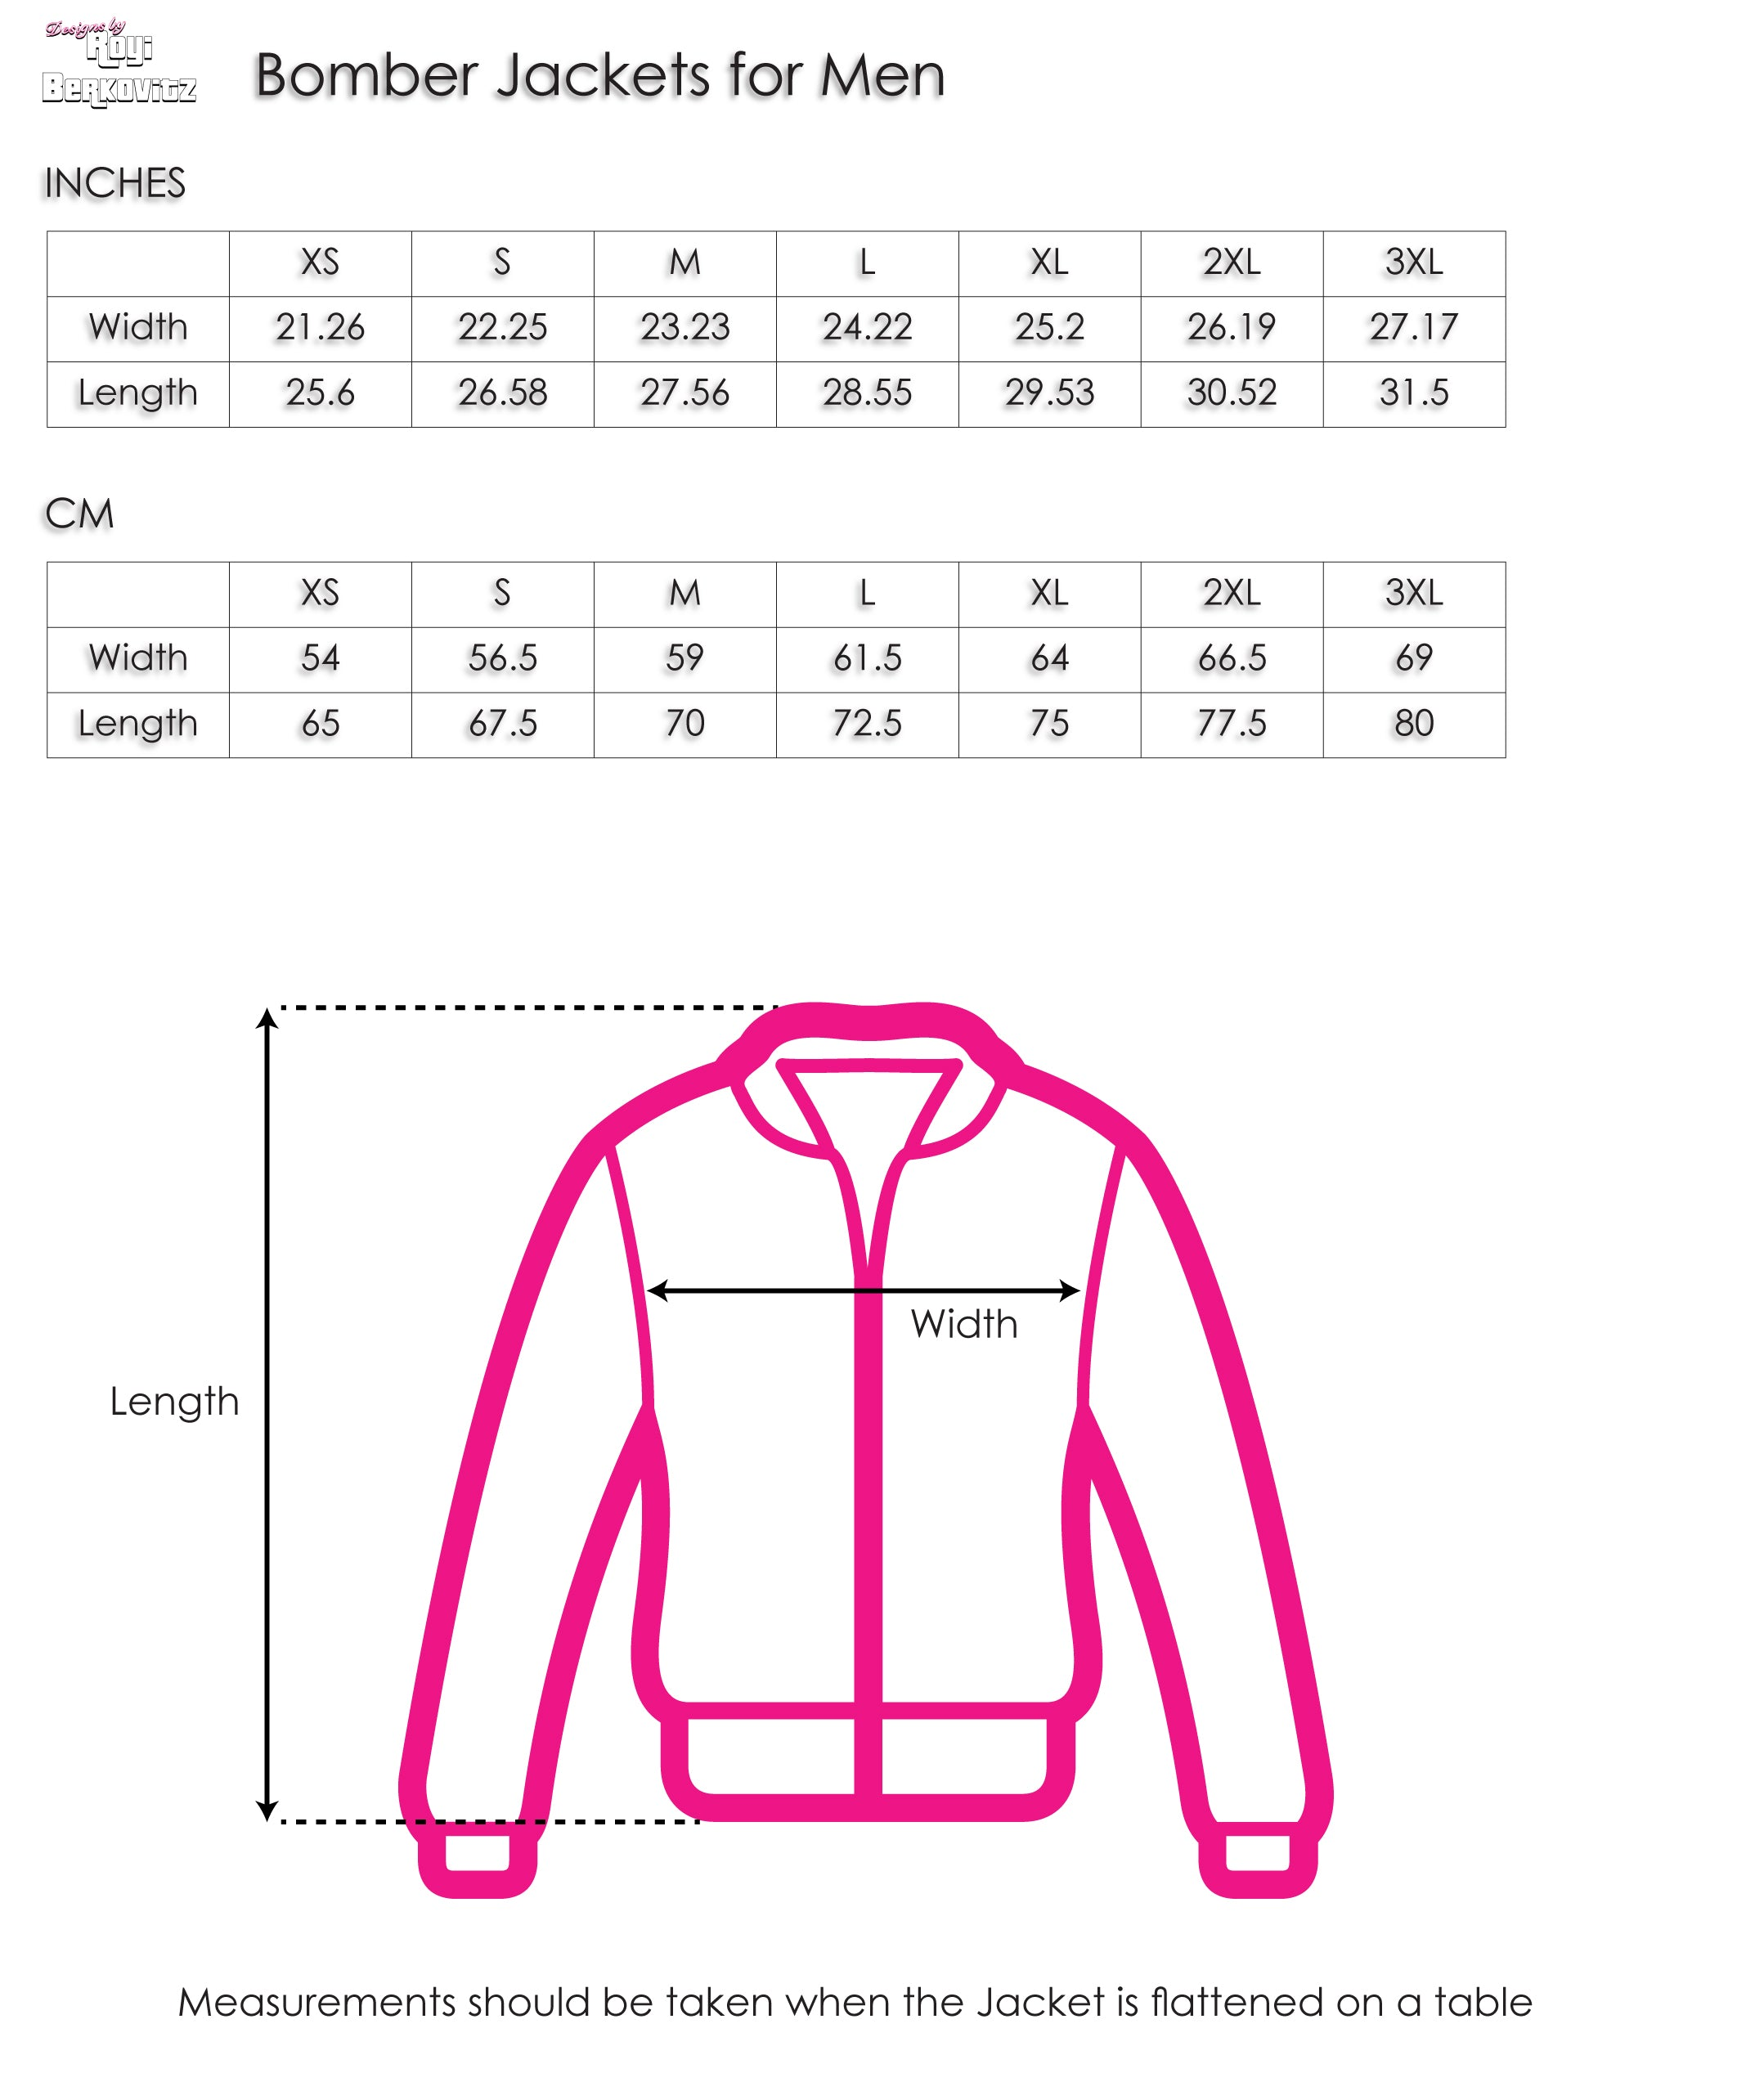 Bomber Jackets for Men | Size Chart | Designs by Royi Berkovitz